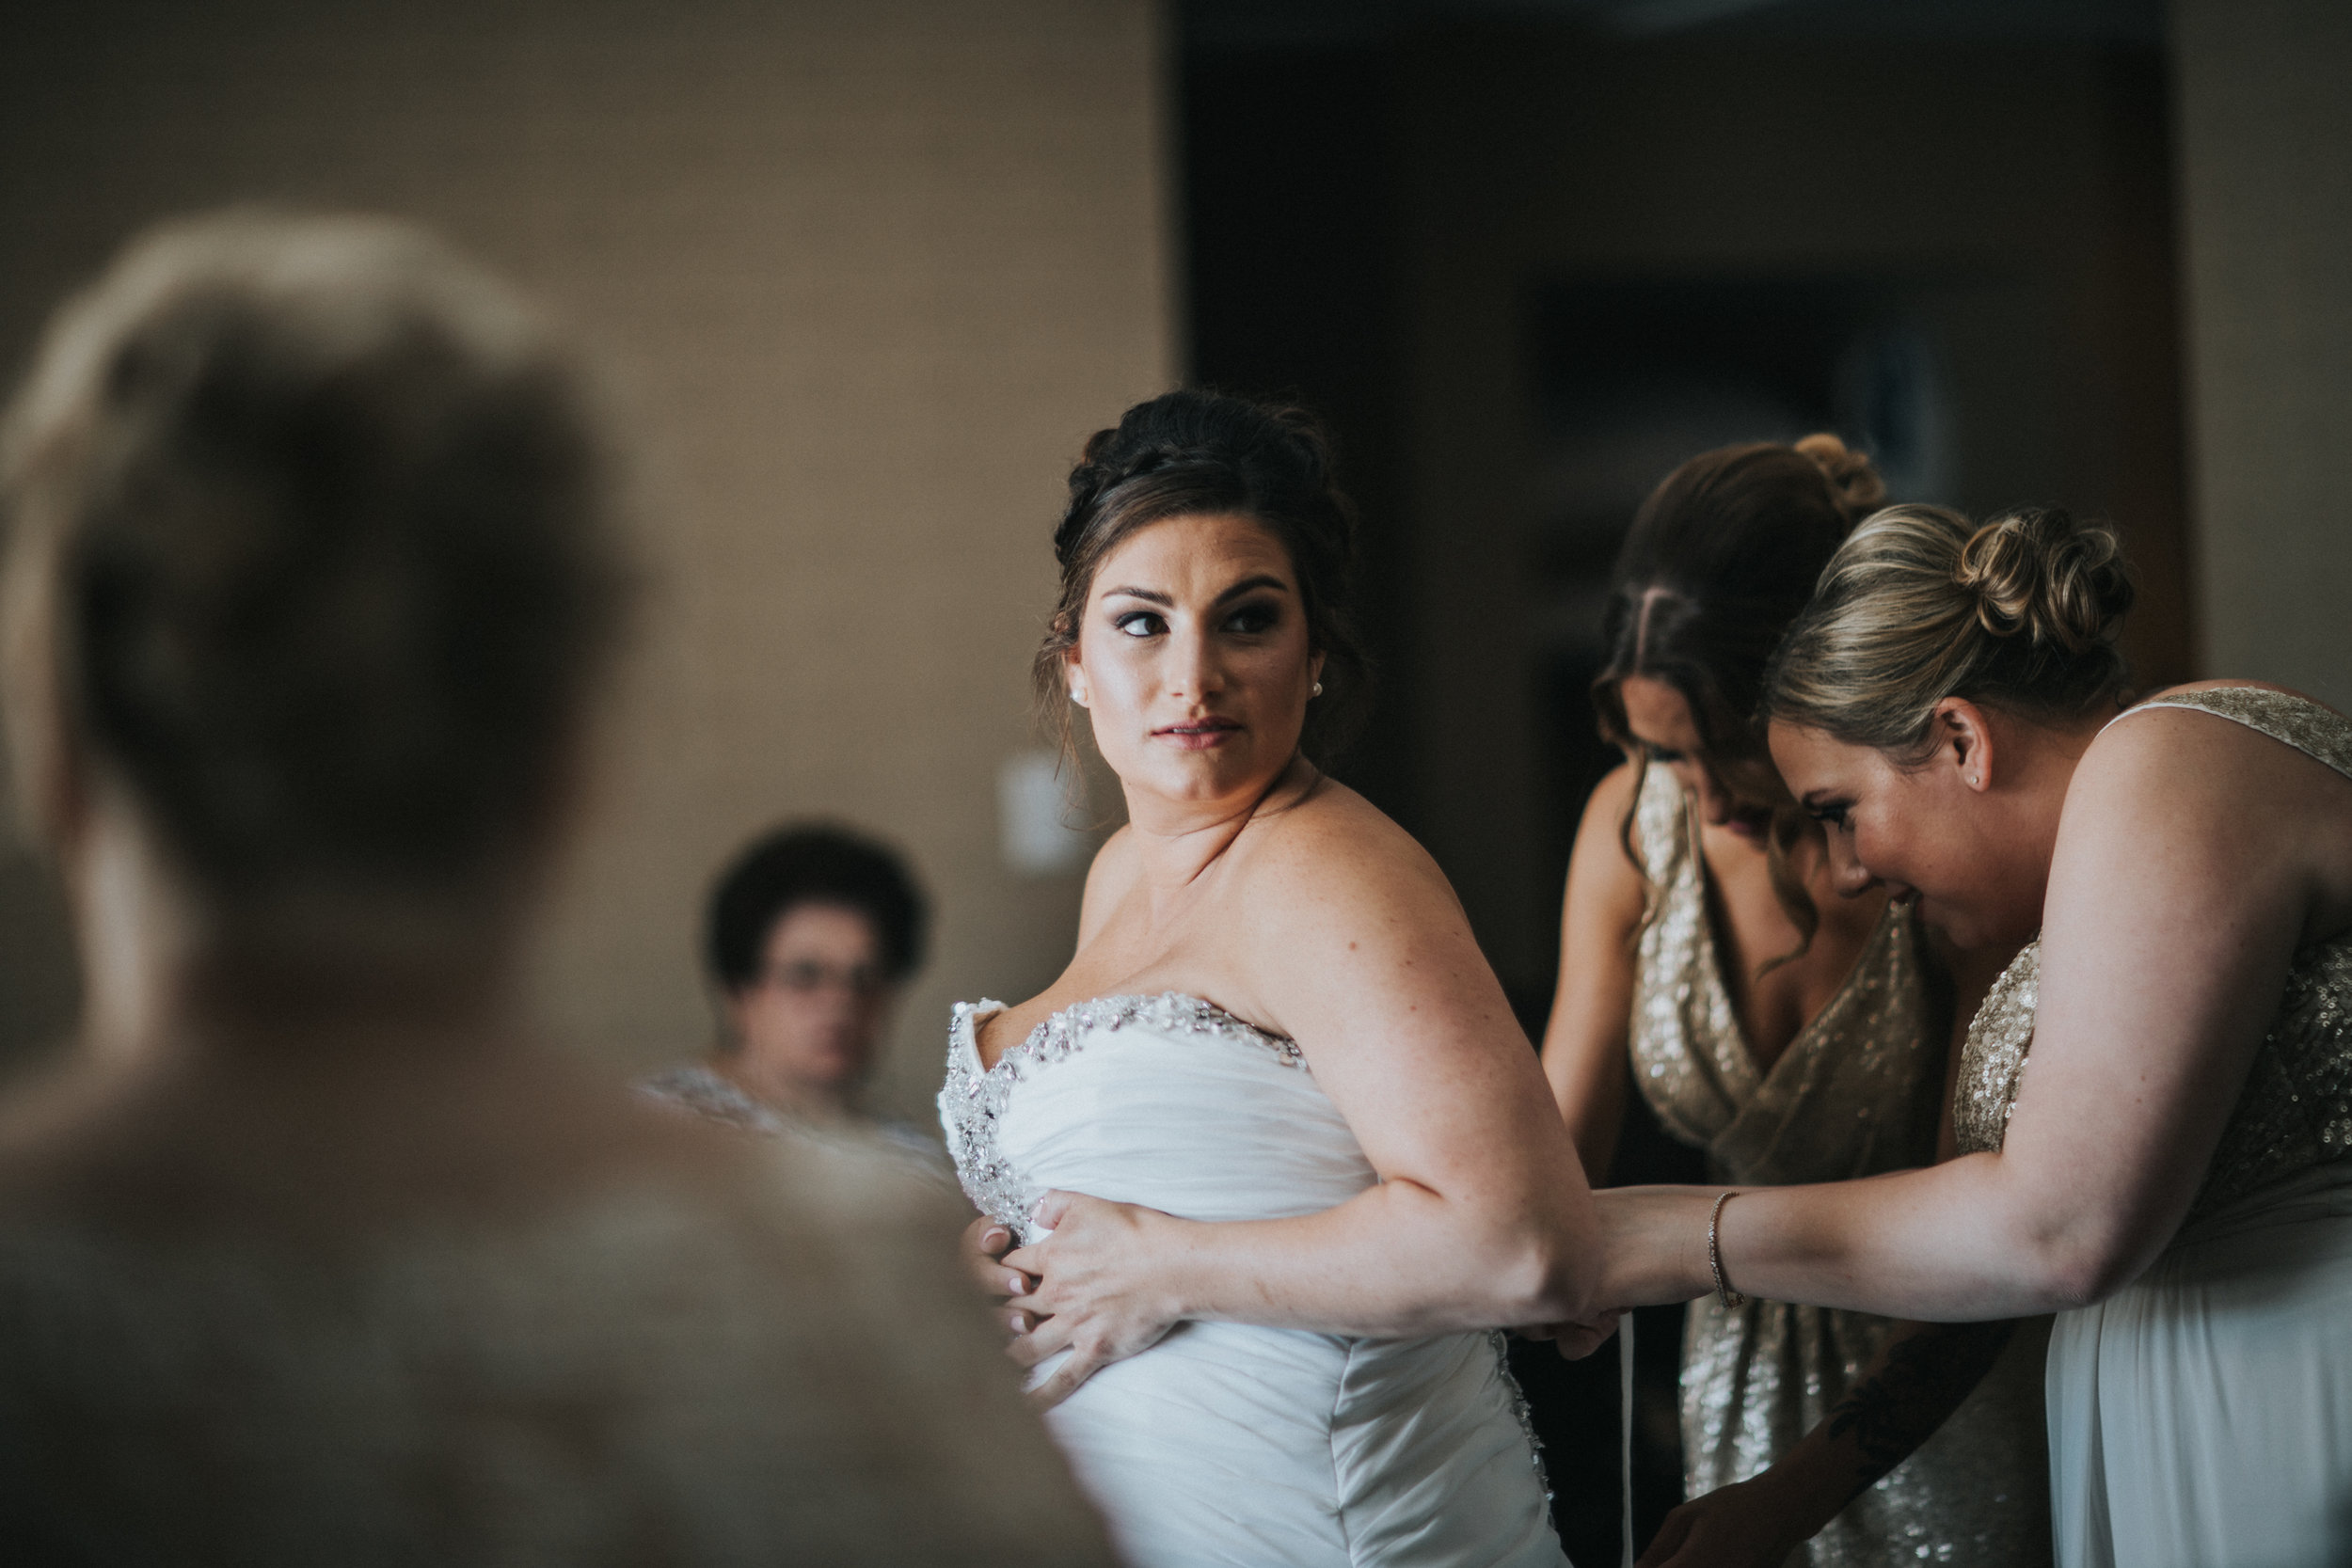 JennaLynnPhotography-NJWeddingPhotographer-Wedding-TheBerkeley-AsburyPark-Allison&Michael-GettingReady-82.jpg